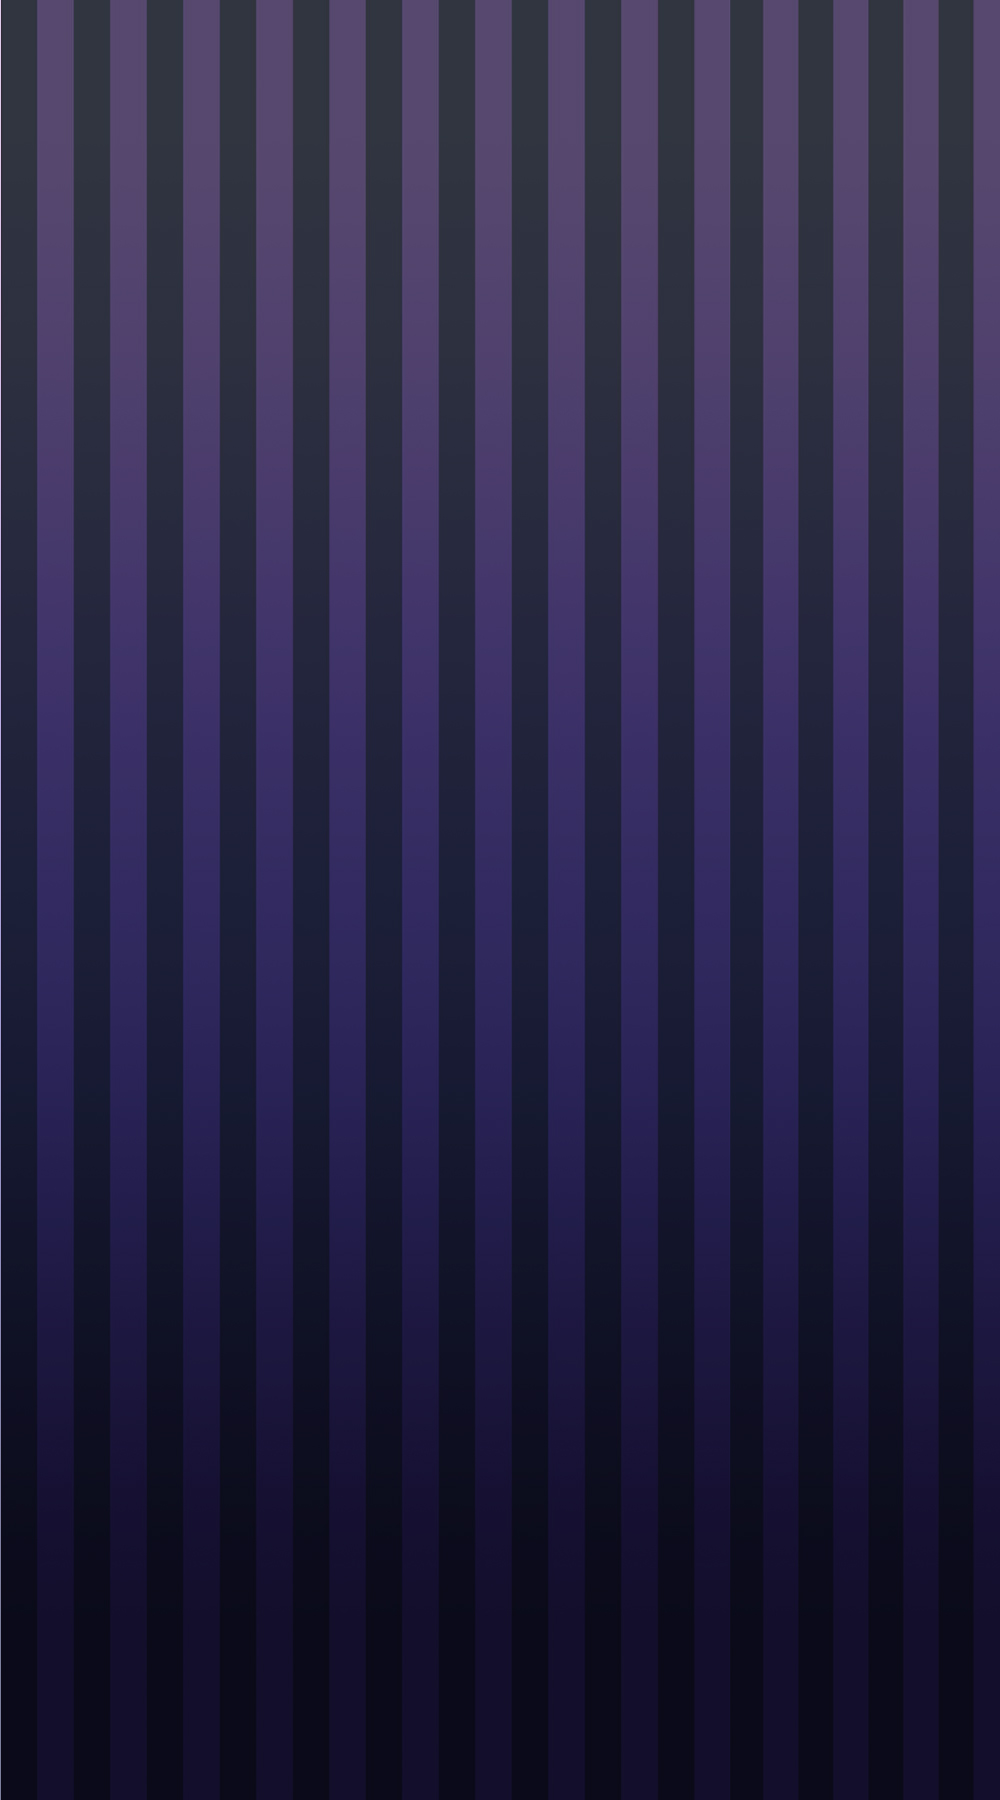 free custom box dark purple bg by SChan